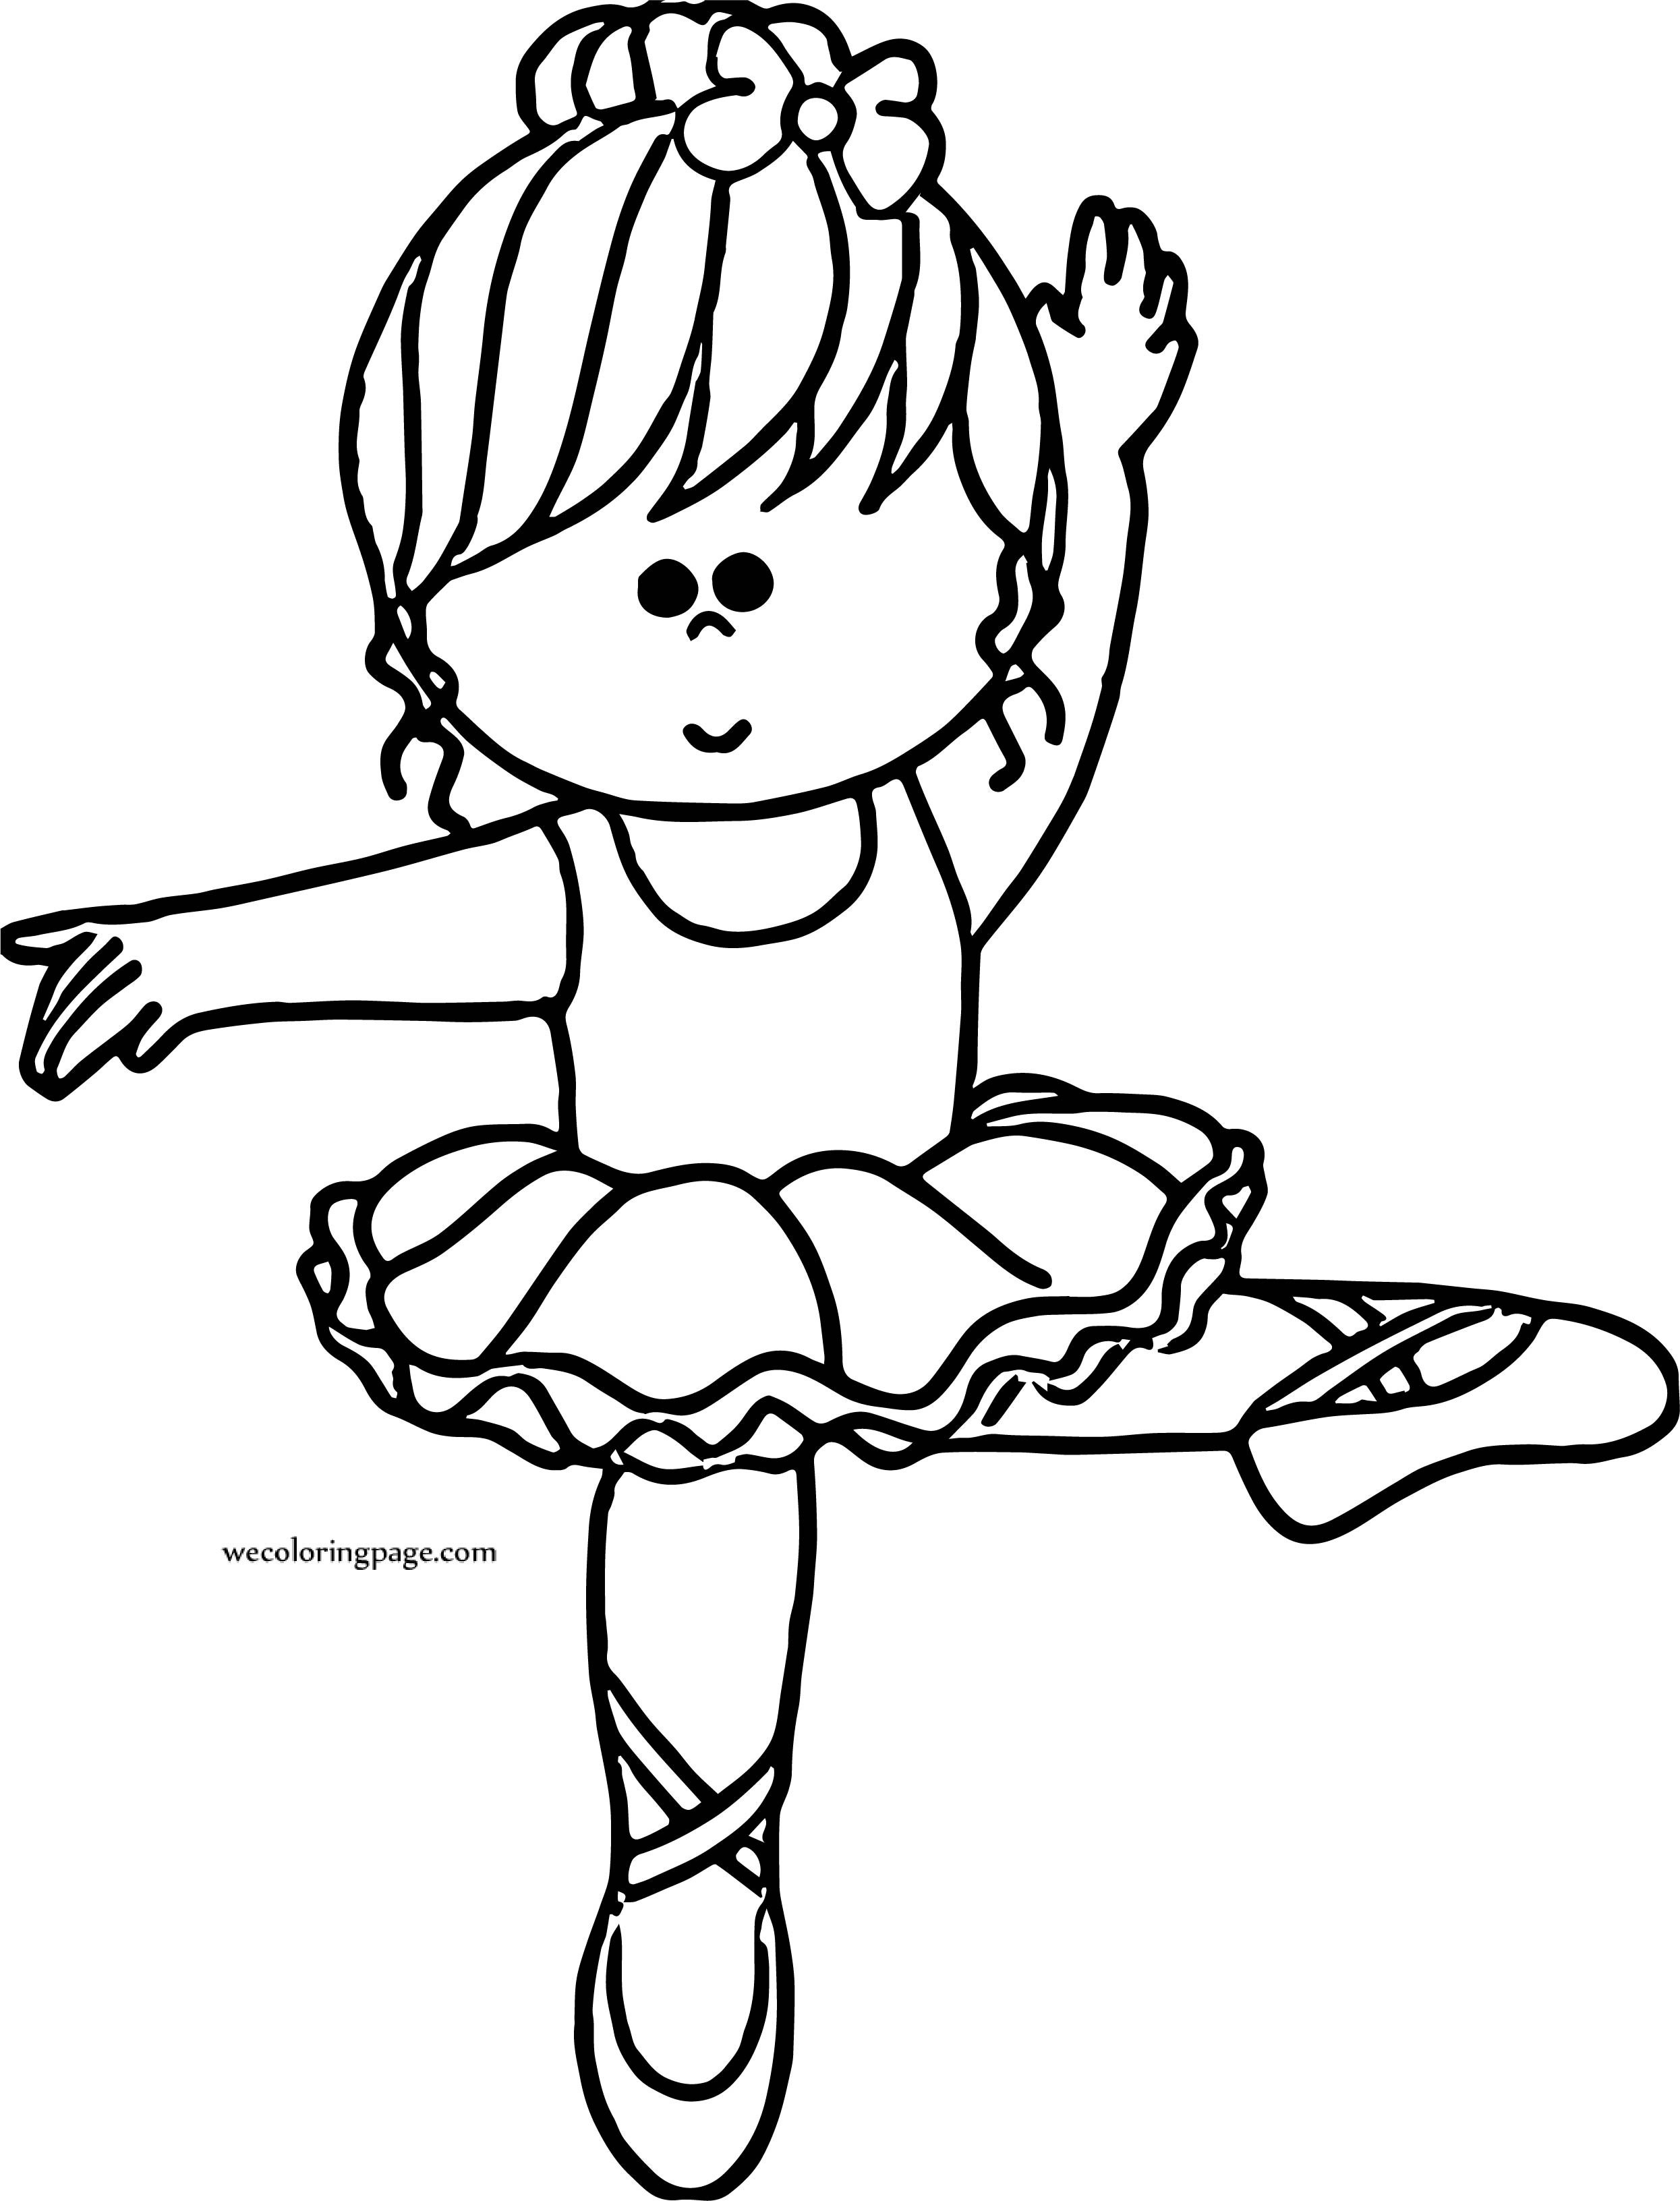 And Ballerina Girl Coloring Page